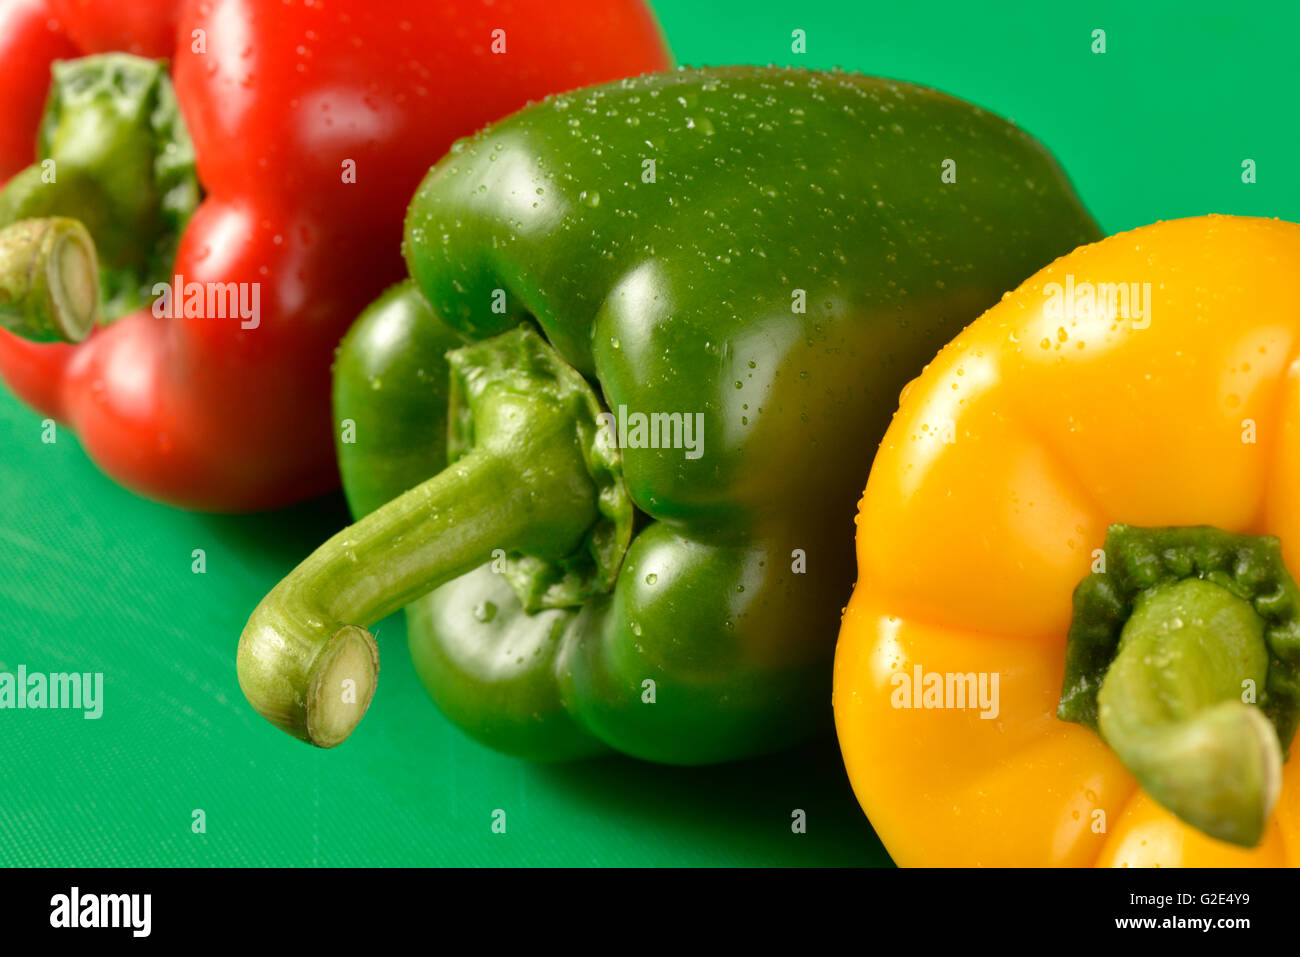 Red, green and yellow bell peppers on green chopping board - the correct colour board for food hygiene requirements - Stock Image